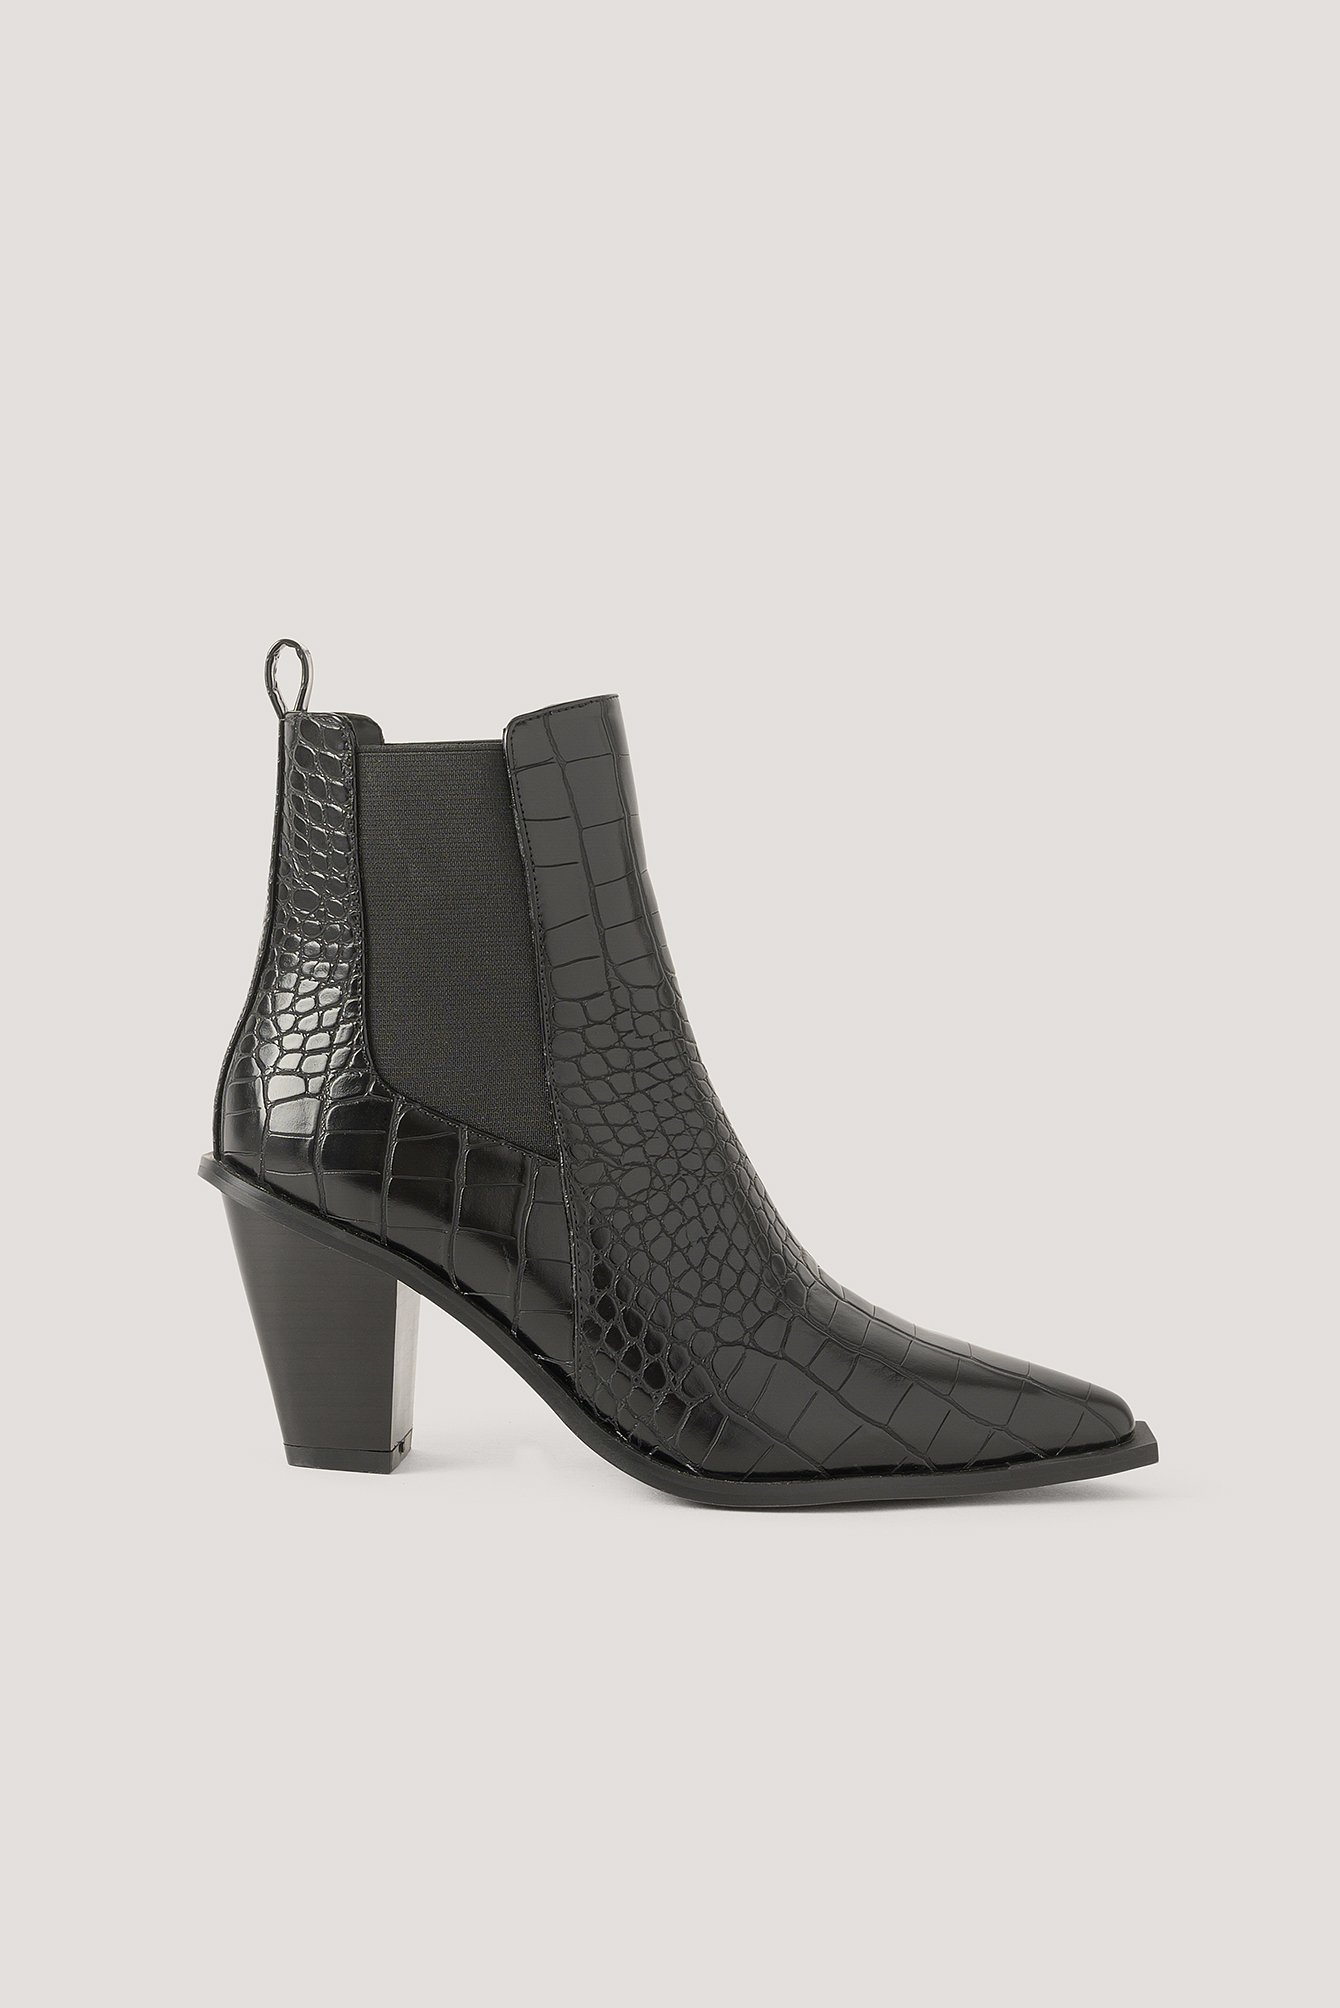 Na-Kd Shoes Croc Pointy Block Heel Boots - Black